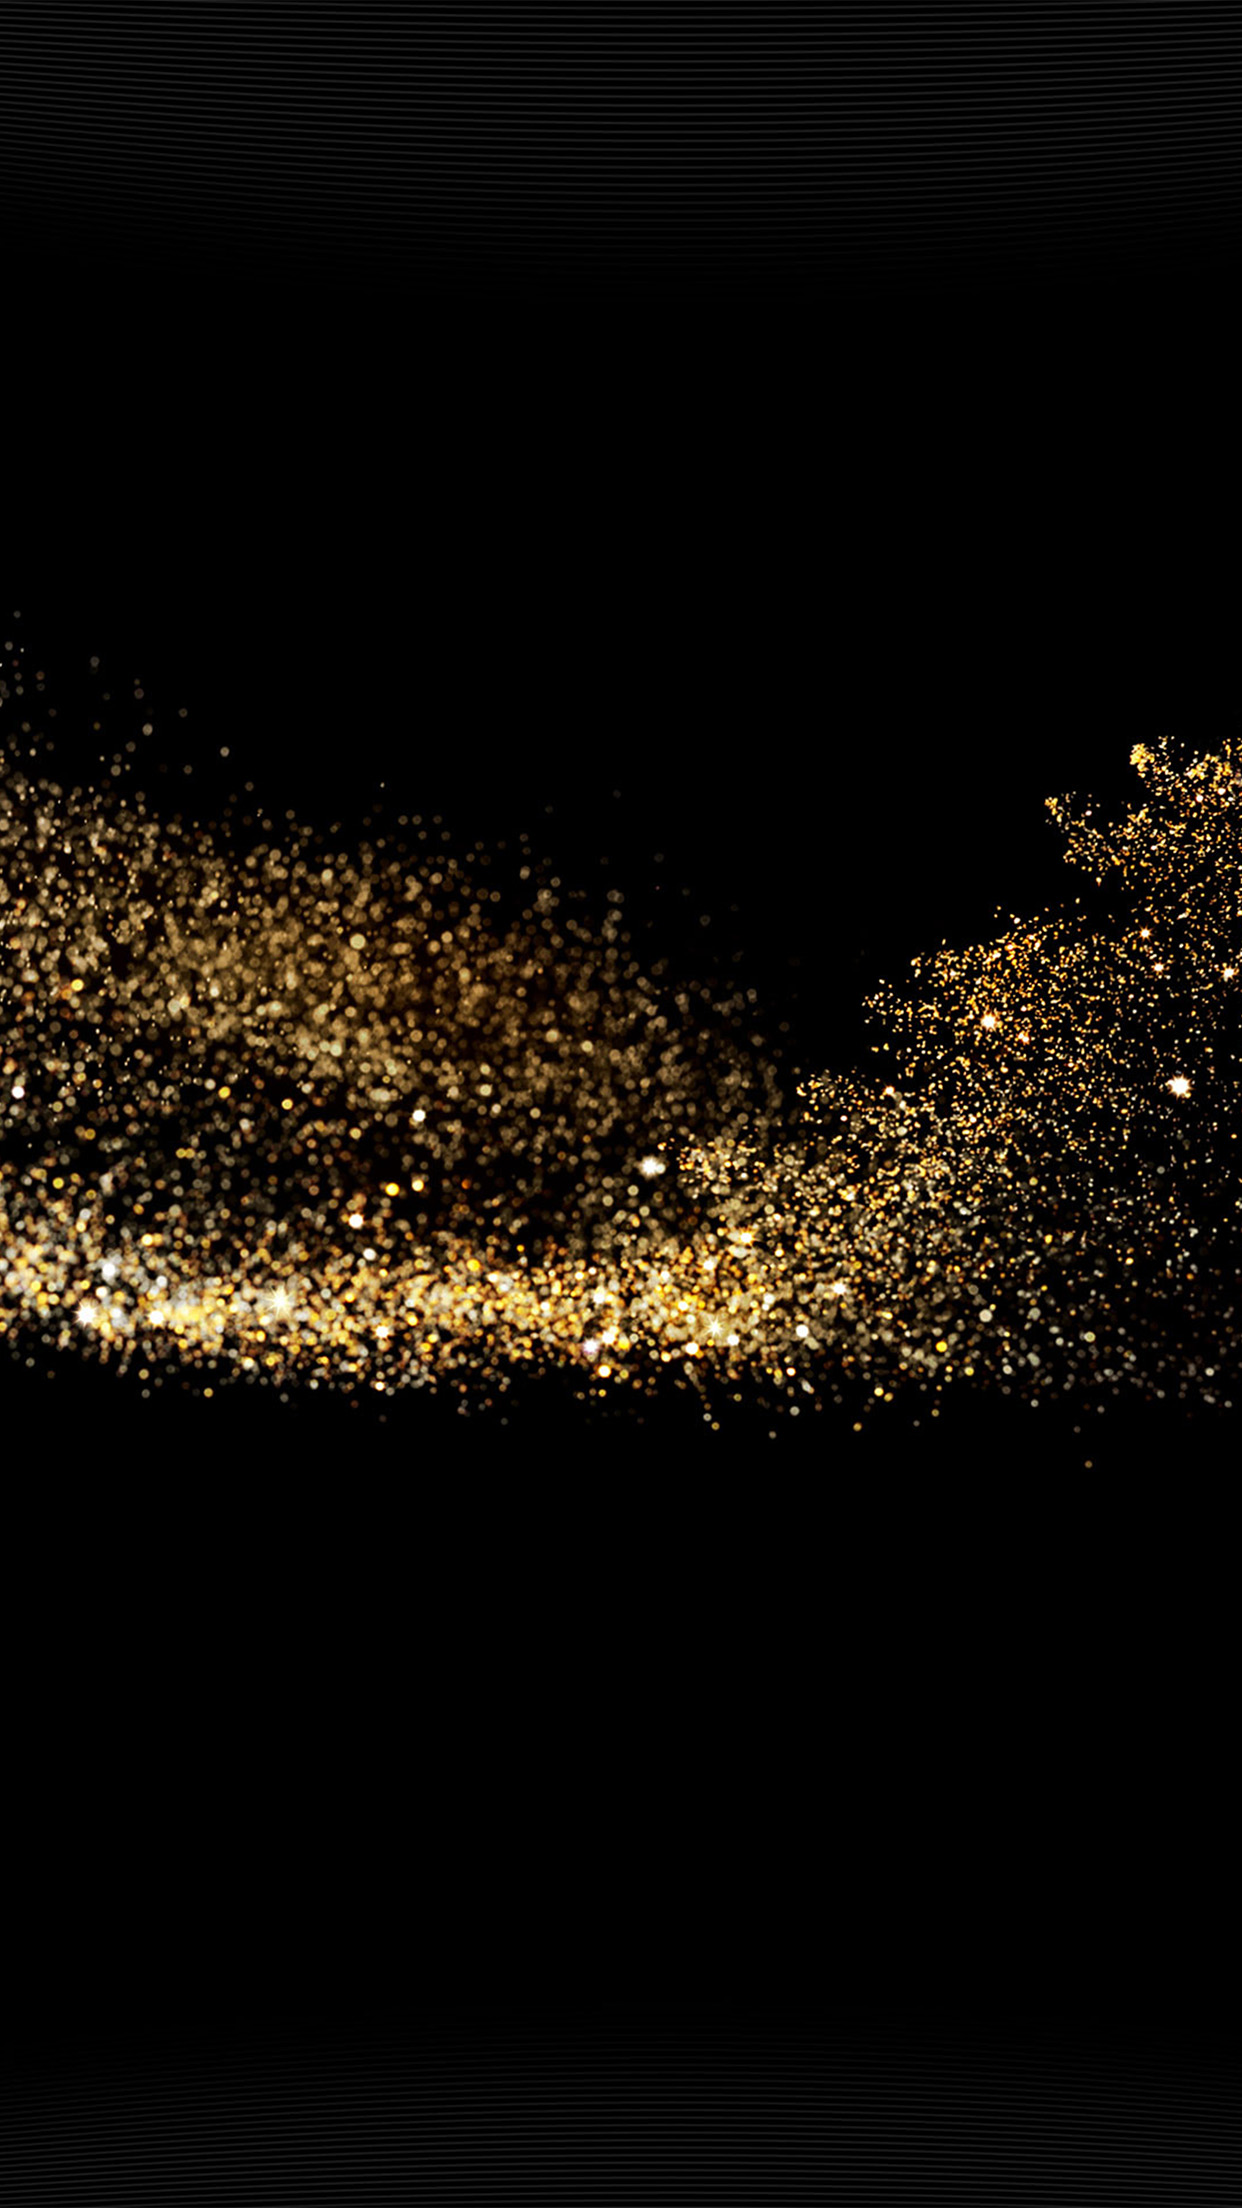 Gold Glitter Texture On Black Background, Golden, Glitter ...